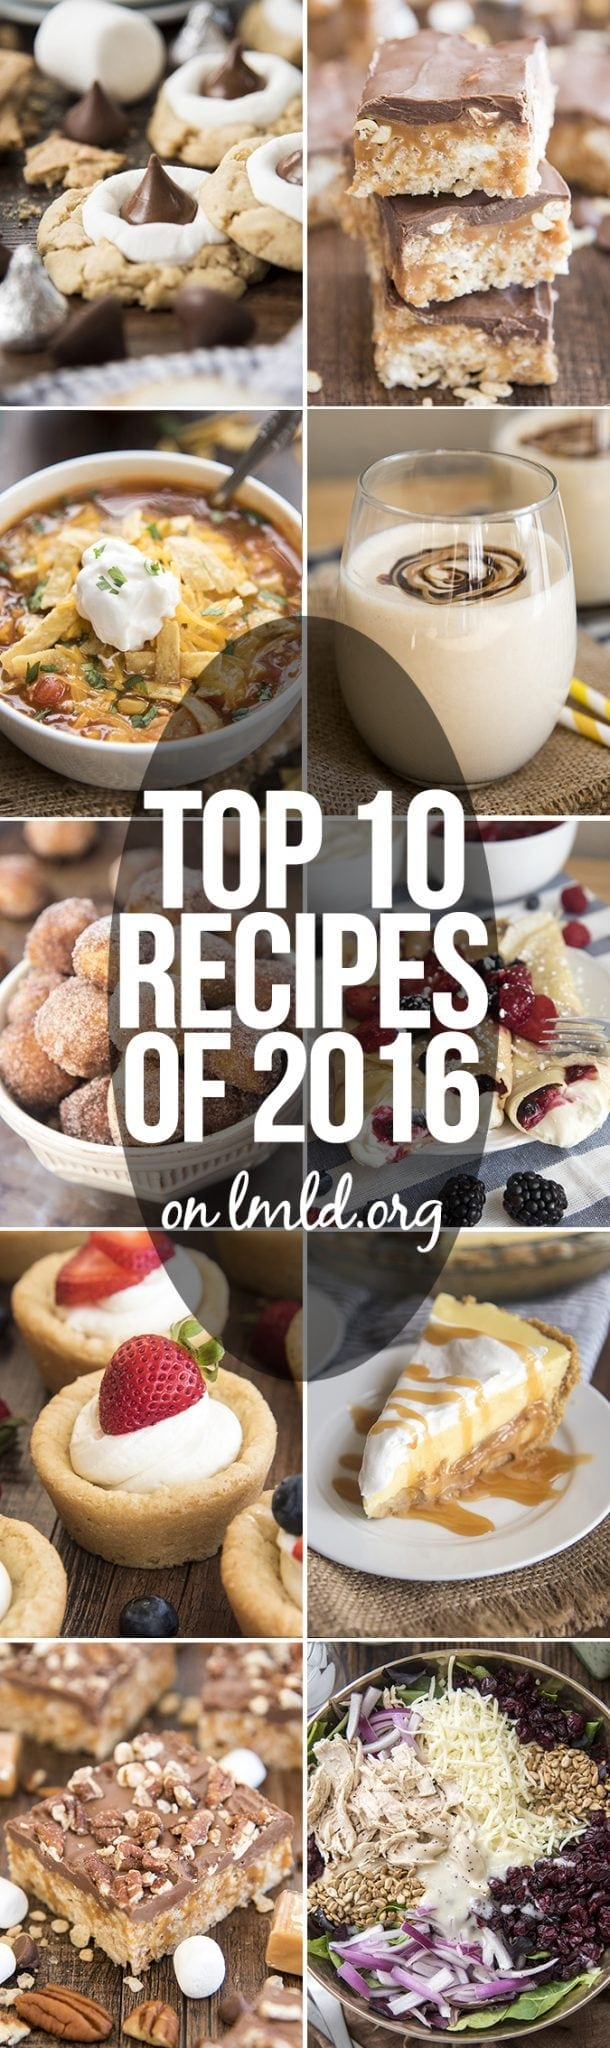 Top 10 Recipes of 2016 on Like Mother Like Daughter. You are going to love them all!